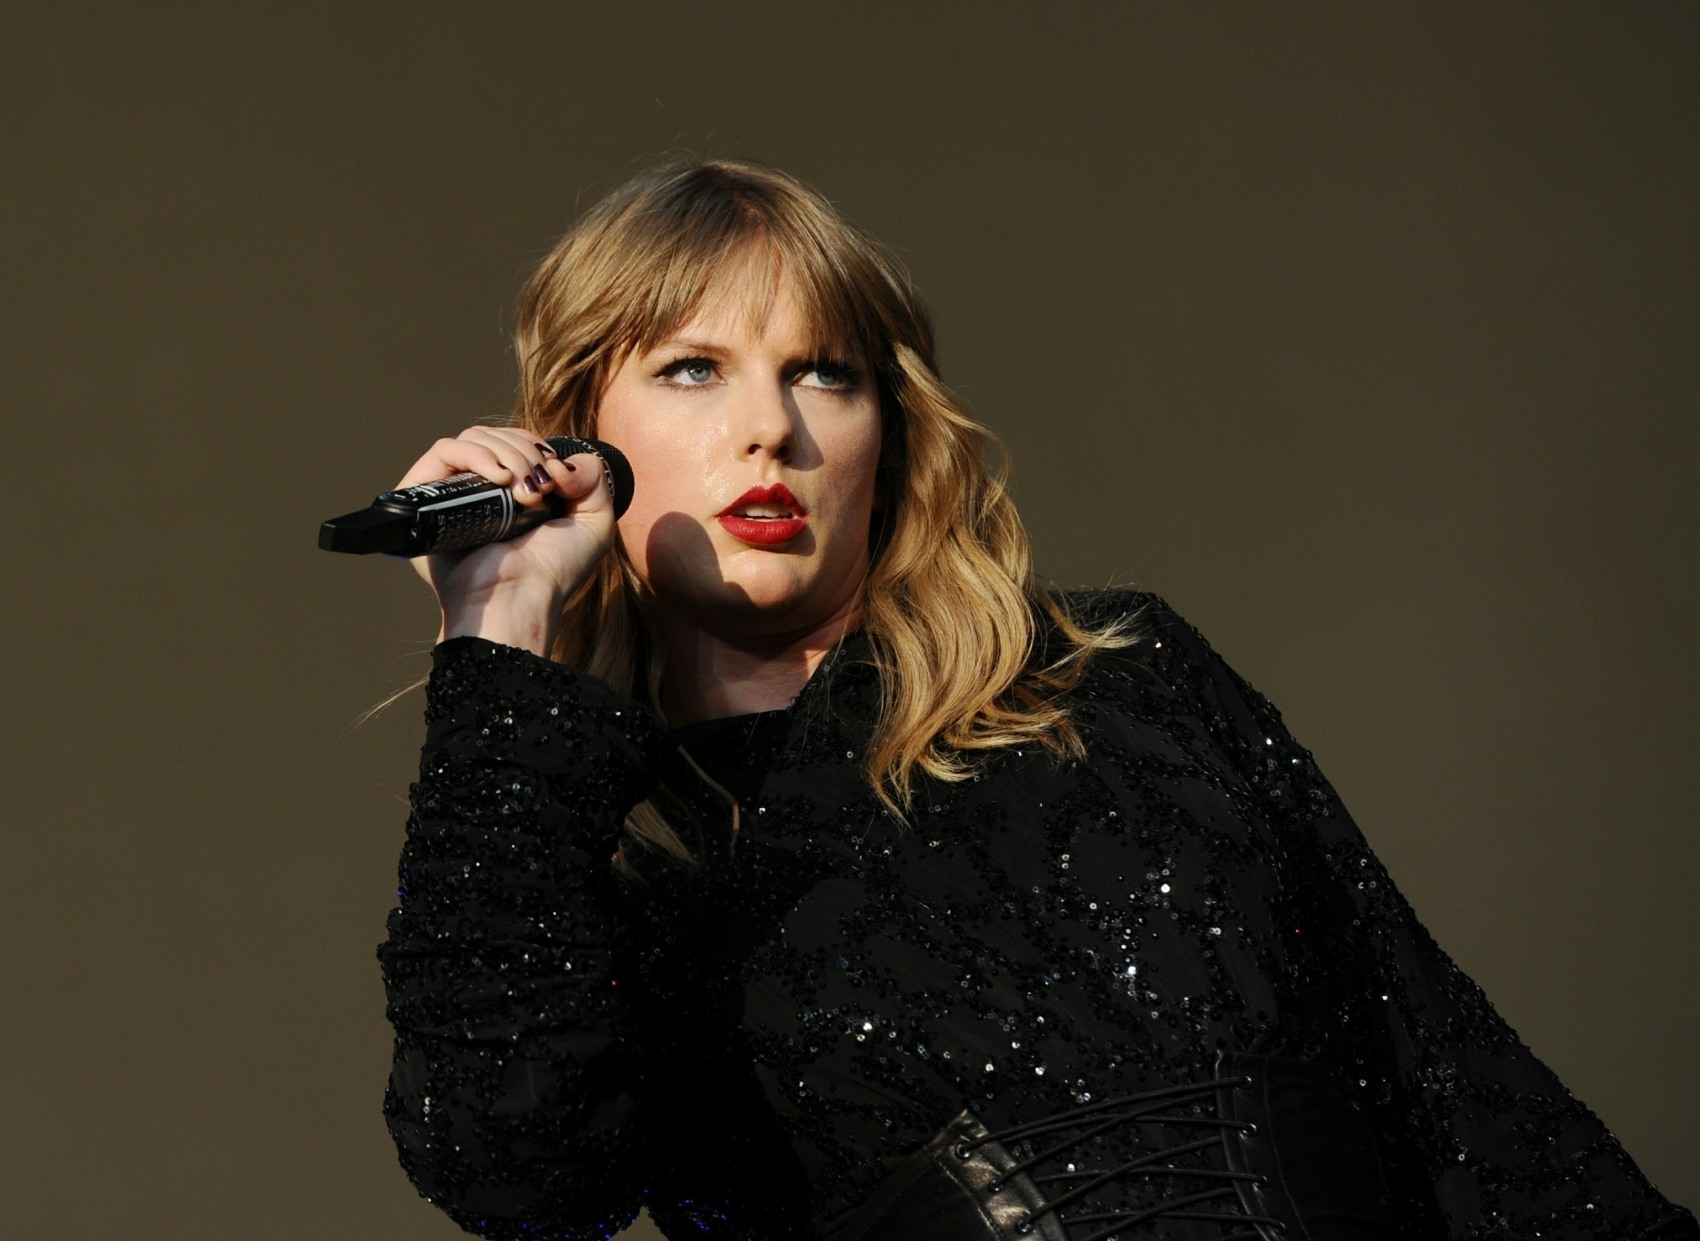 Taylor Swift performs on stage at the BBC's The Biggest Weekend in Swansea